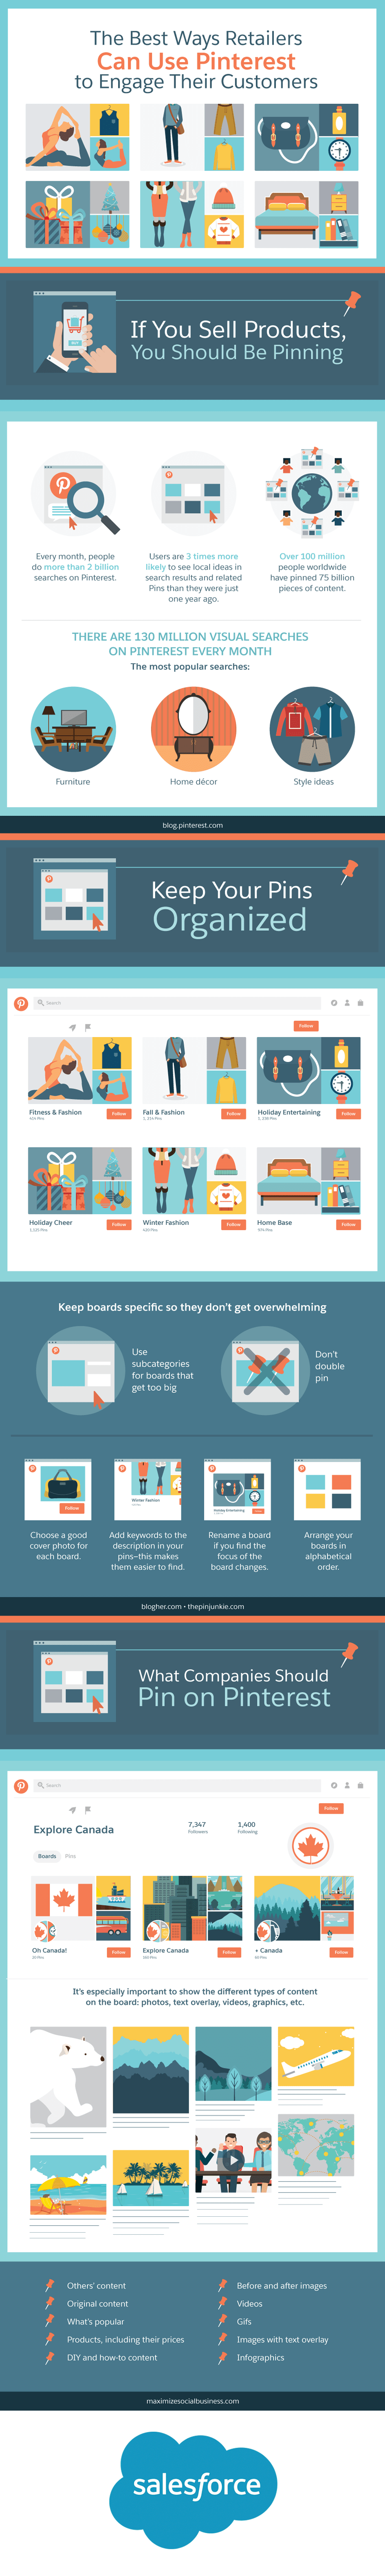 The Best Ways Retailers Can Use Pinterest to Engage Their Customers - infographic